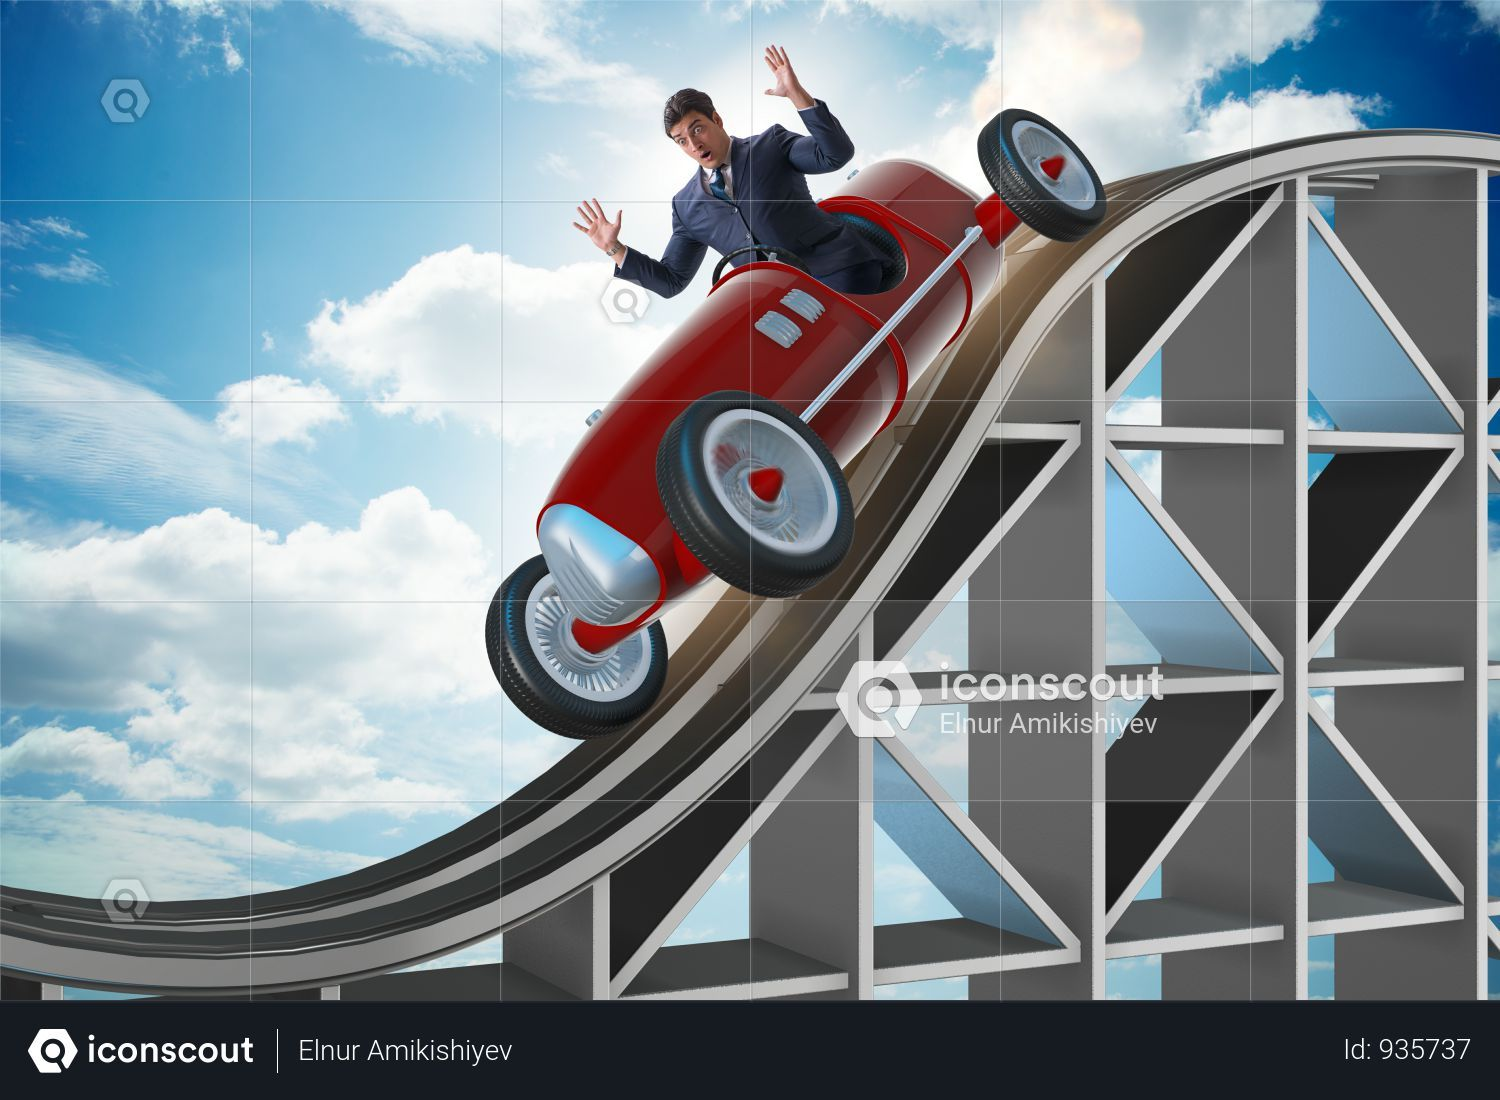 Premium Businessman Driving Sports Car On Roller Coaster Photo Download In Png Jpg Format Roller Coaster Sports Car Roller